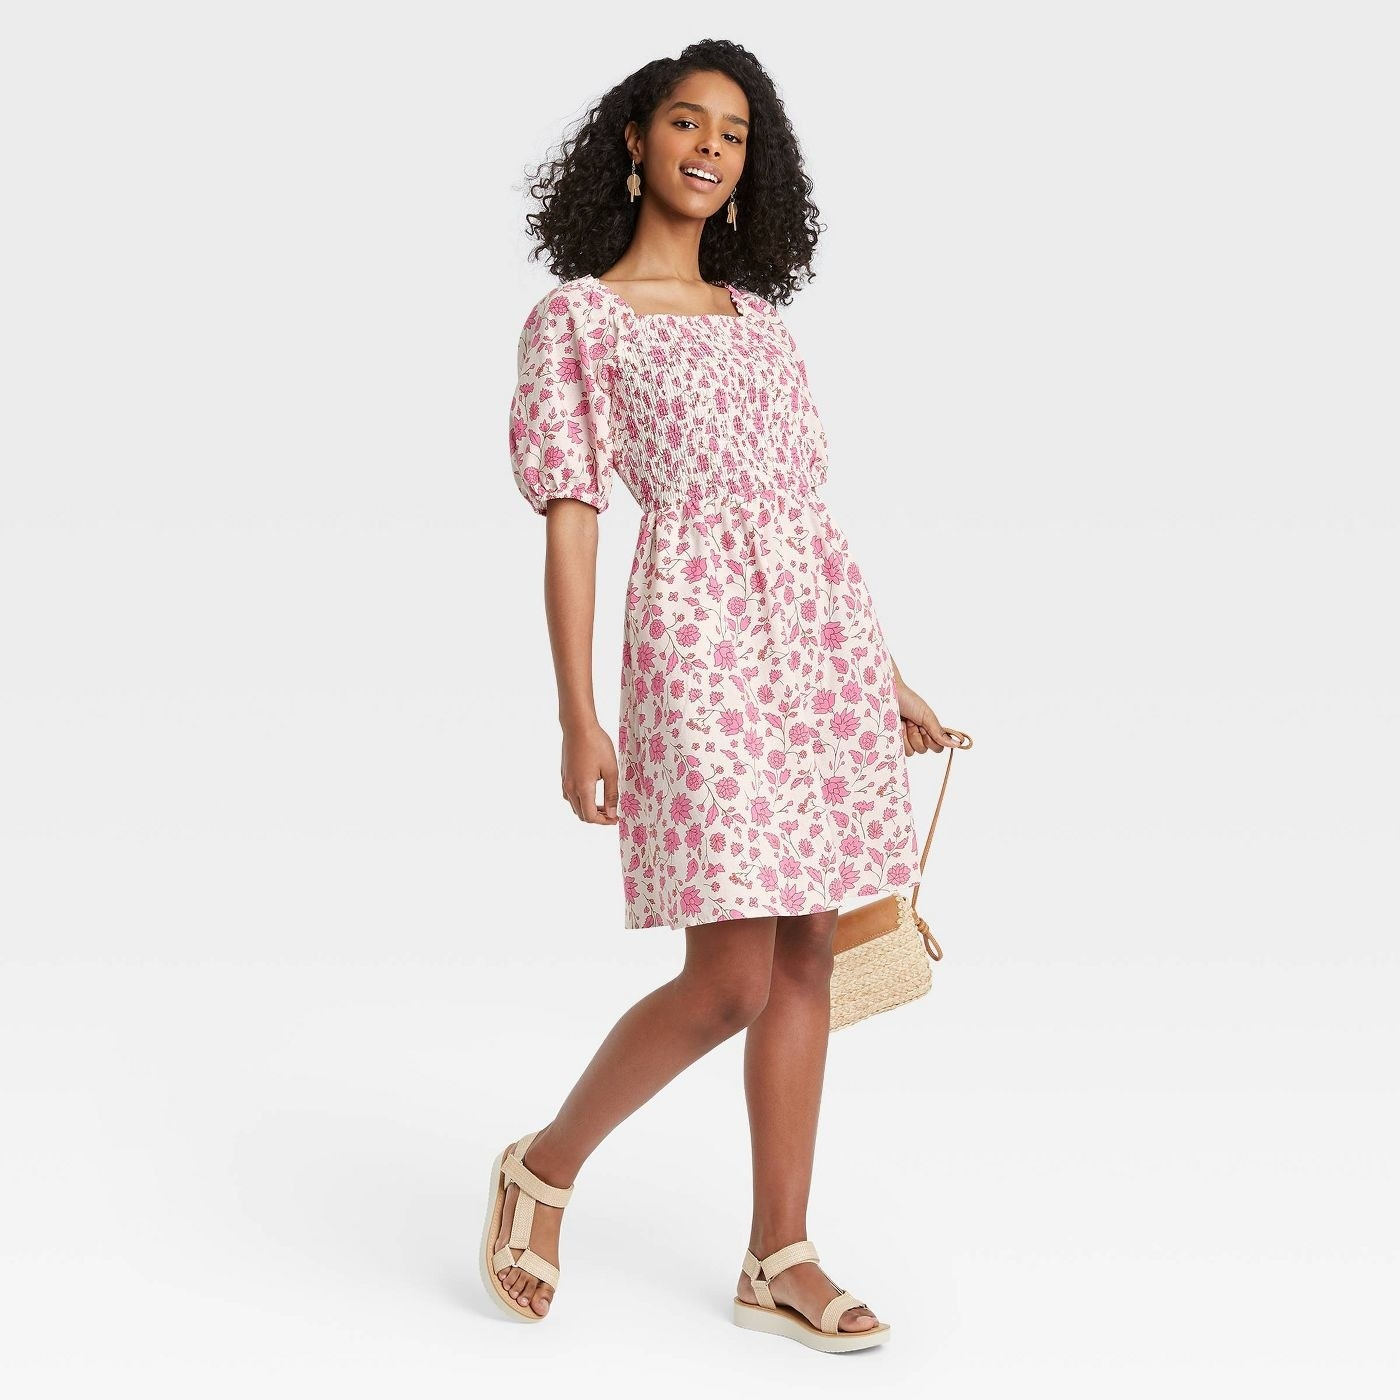 Model wearing pink floral dress with cream background, stops above the knee